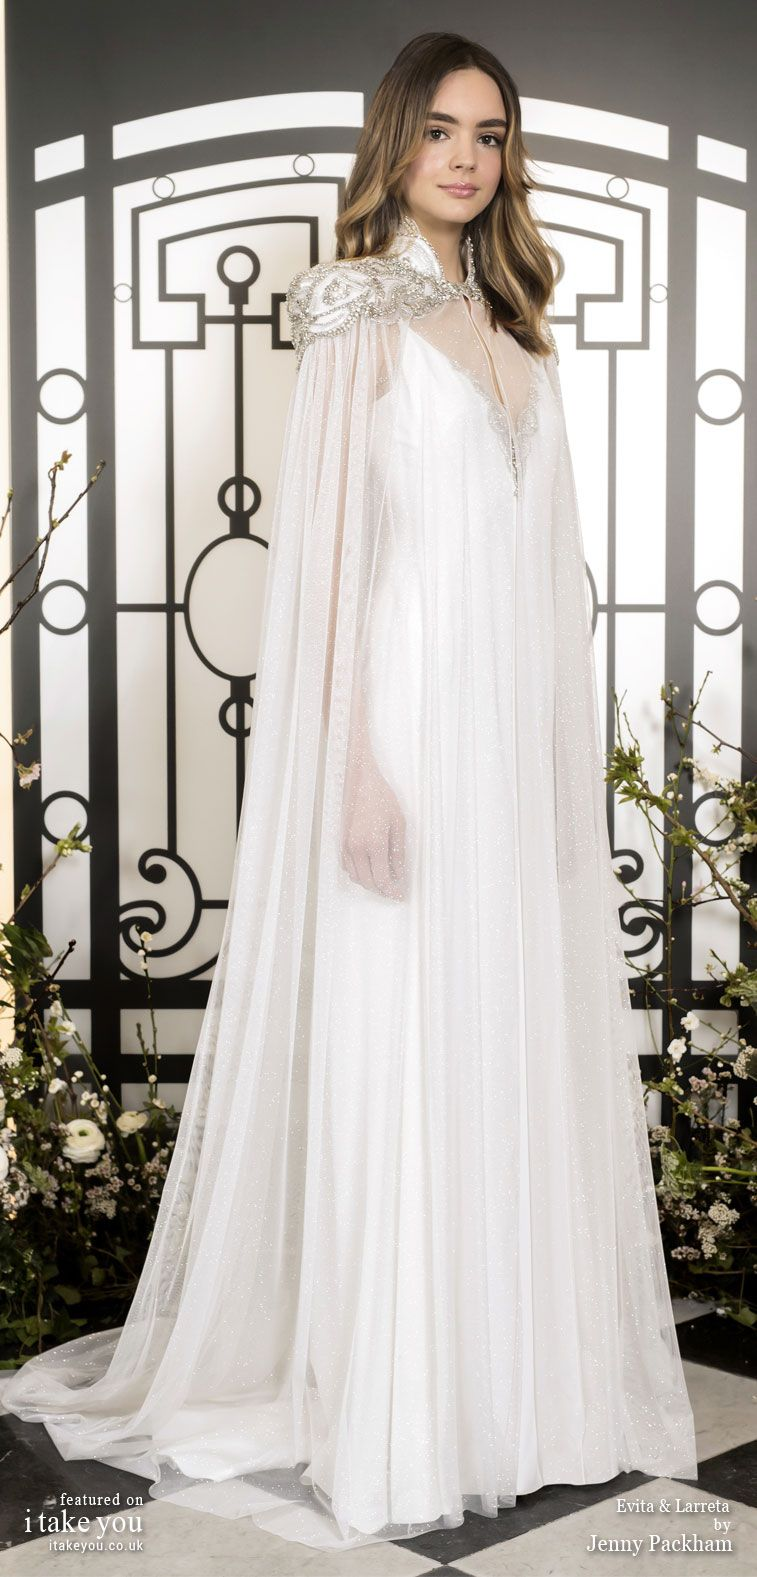 Jenny Packham 2020 Bridal Spring Collection Pure Elegance Timeless Sophistication Cape Wedding Dress Wedding Dresses Jenny Packham Wedding Dresses